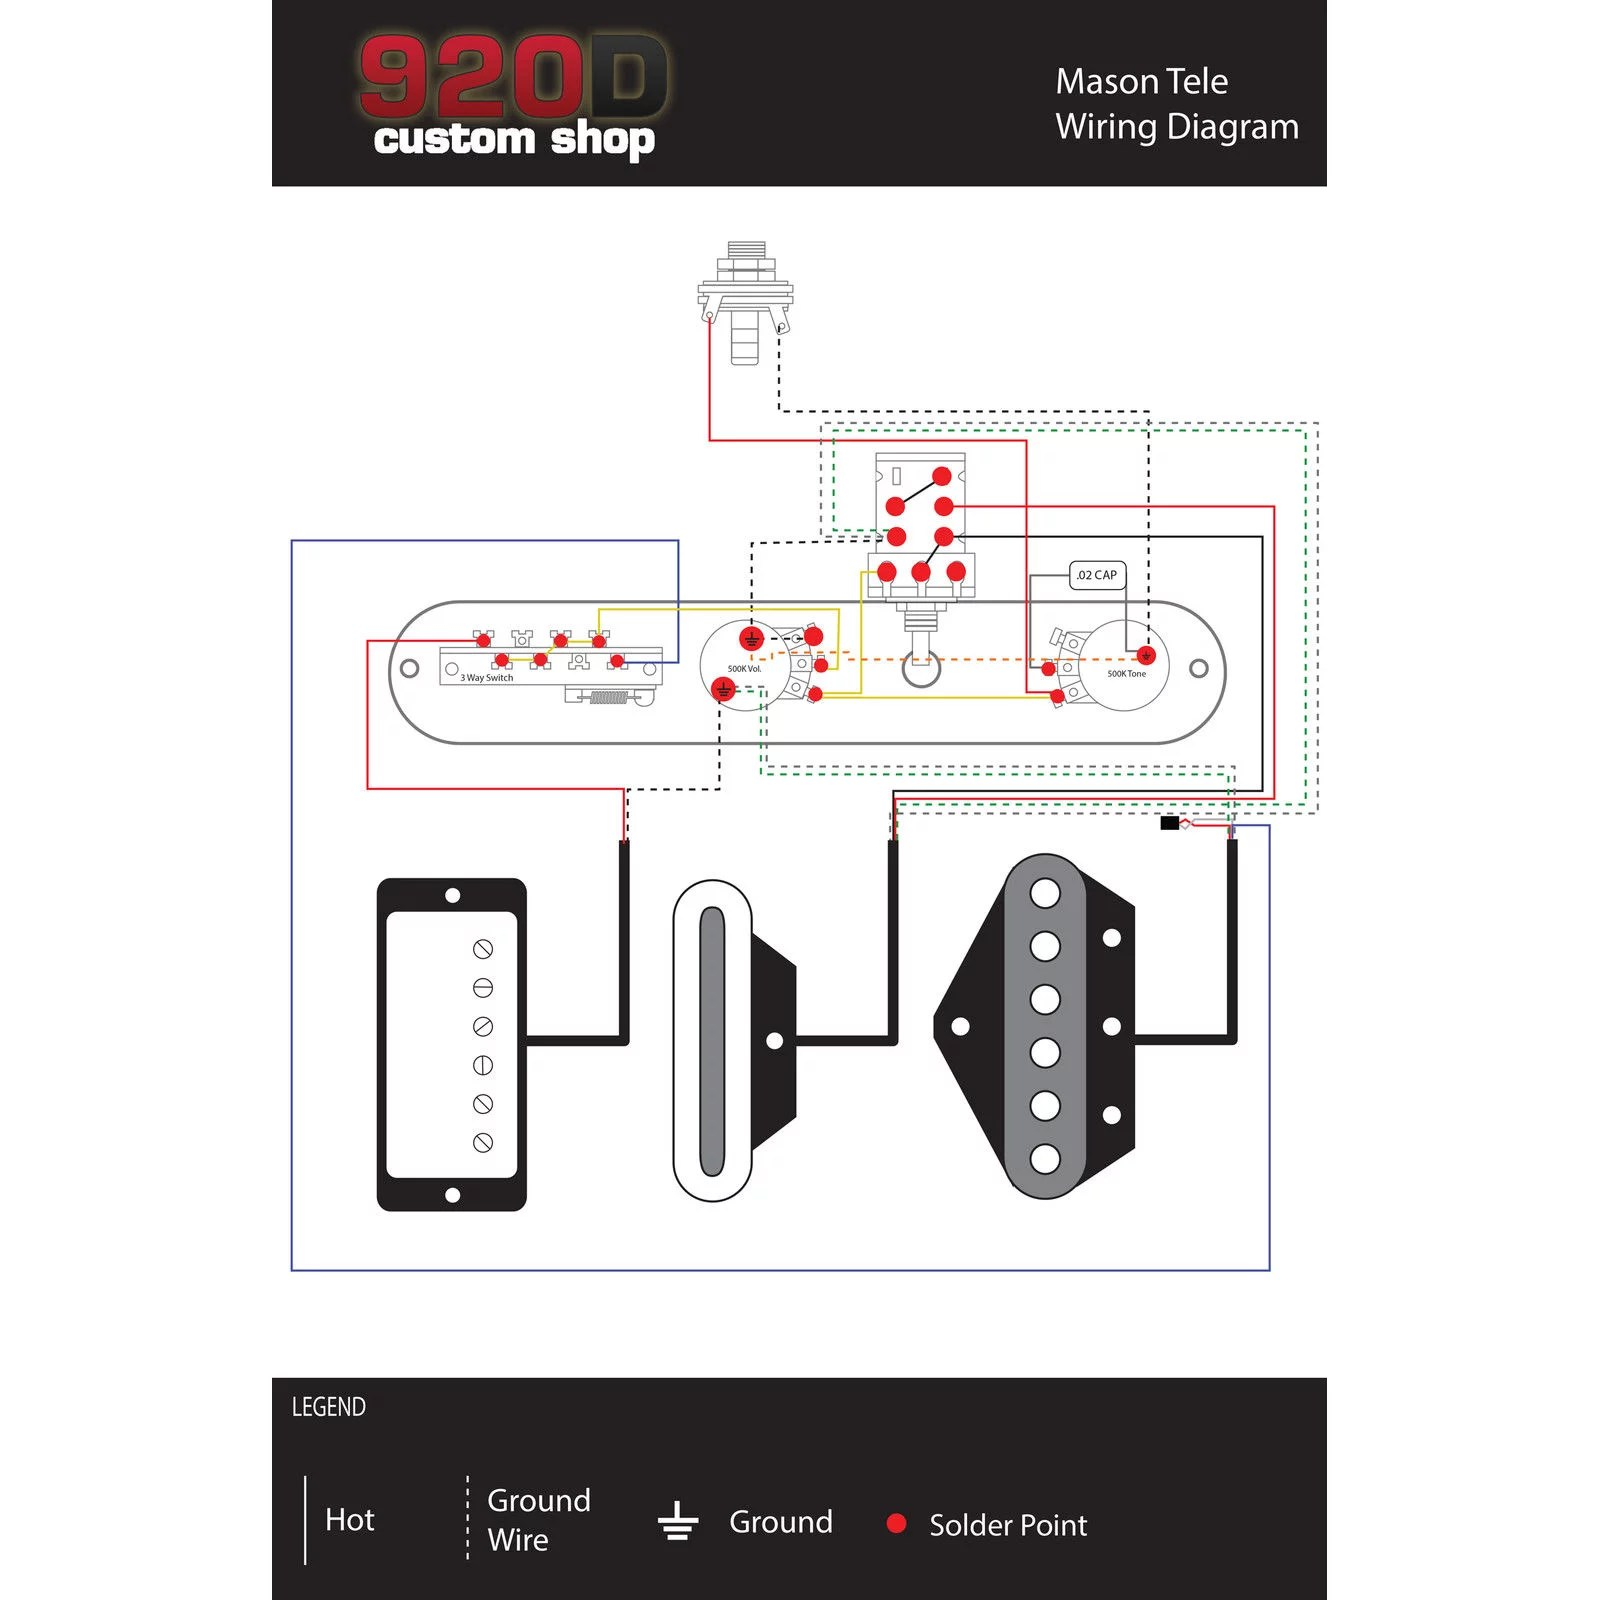 hight resolution of 920d fender telecaster tele brent mason style 3 w control plate fender wiring diagrams 920d fender